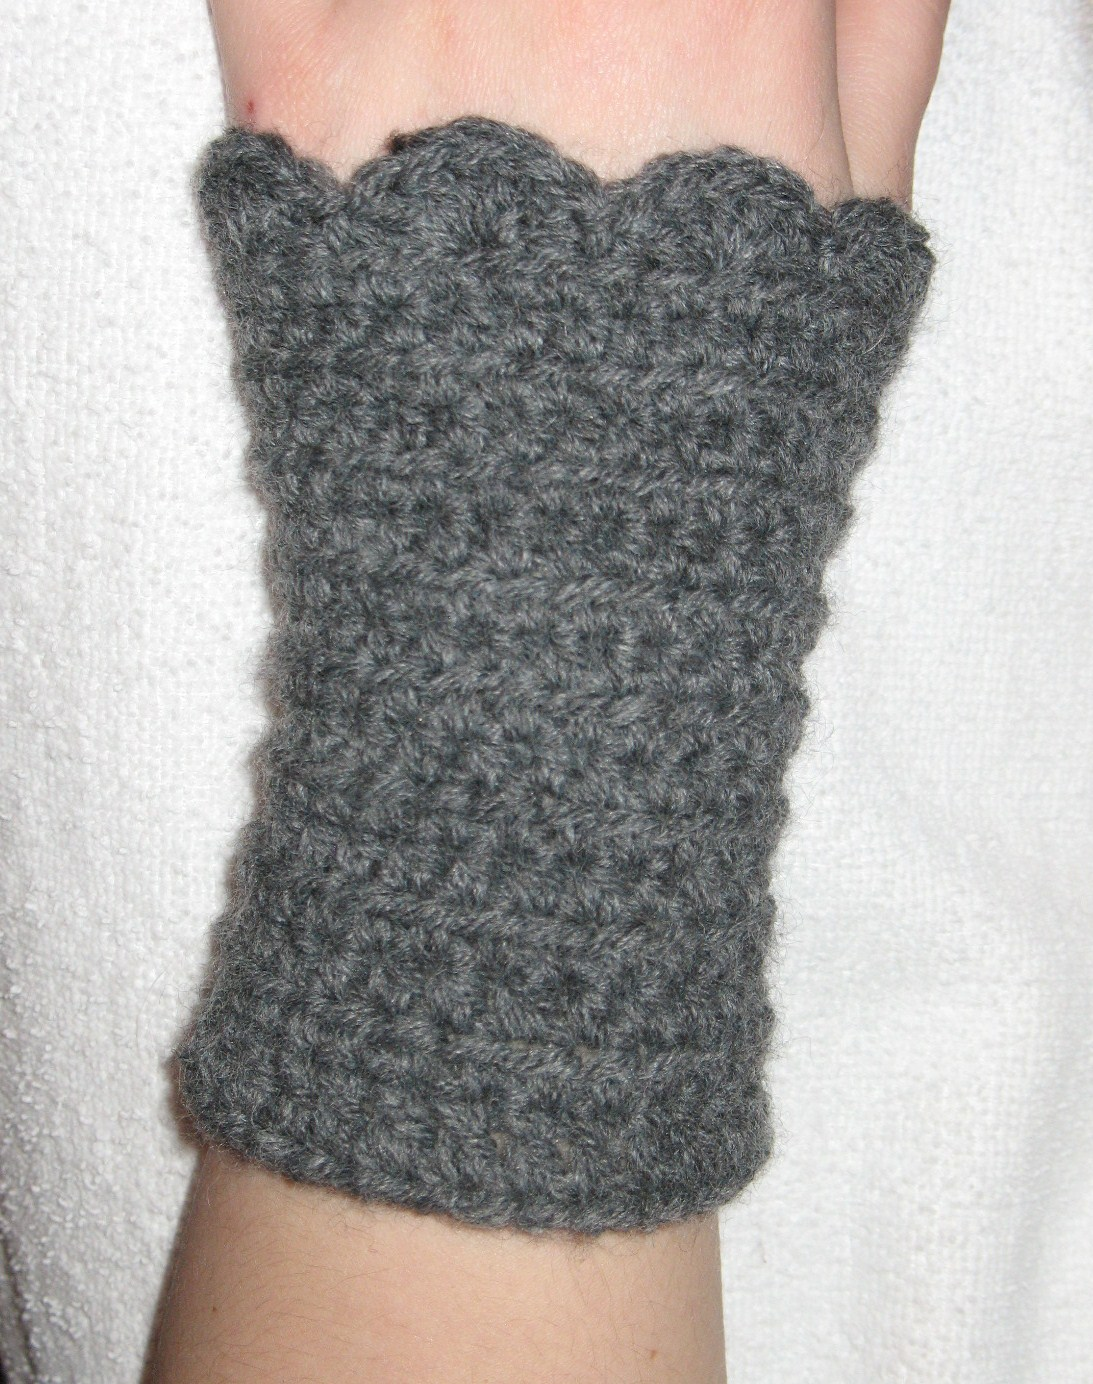 CROCHET HAND WARMERS PATTERN - Crochet Club